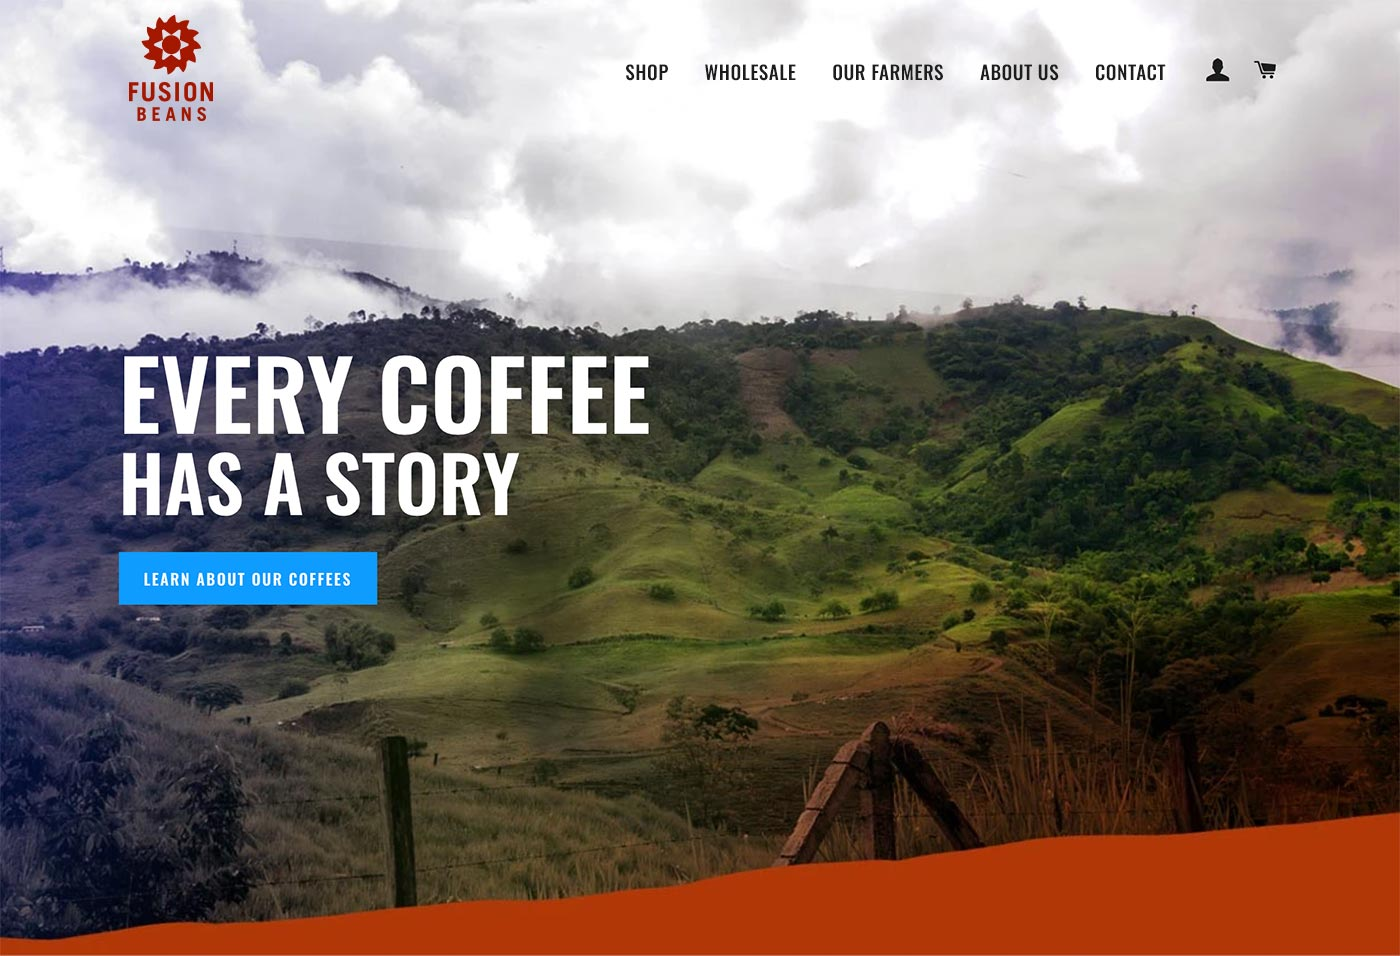 Fusion Beans new site enables easy ordering of beans for both retail and wholesale customers